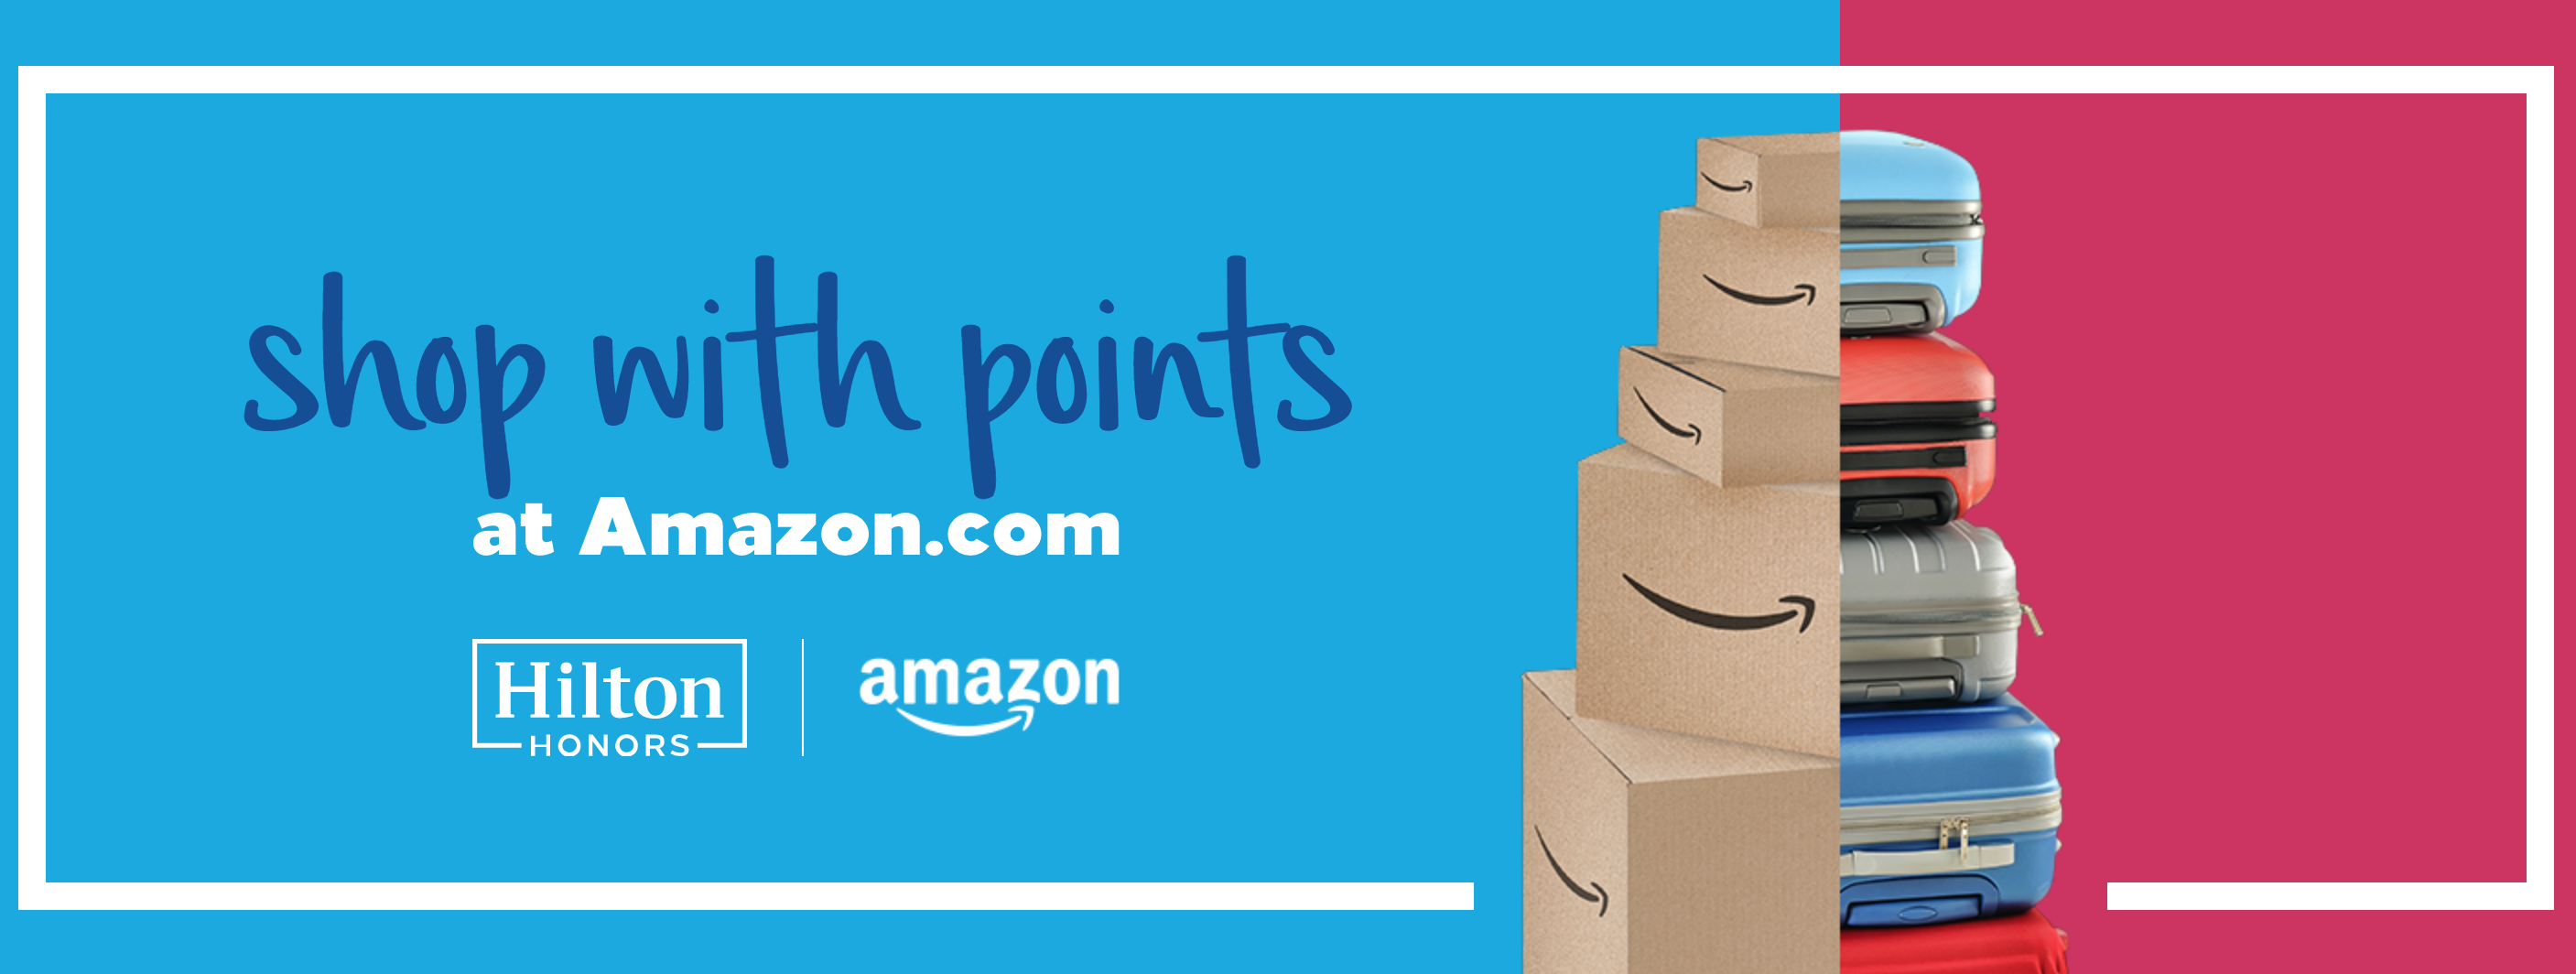 Amazon now lets Hilton Honors members shop with Points | TechCrunch